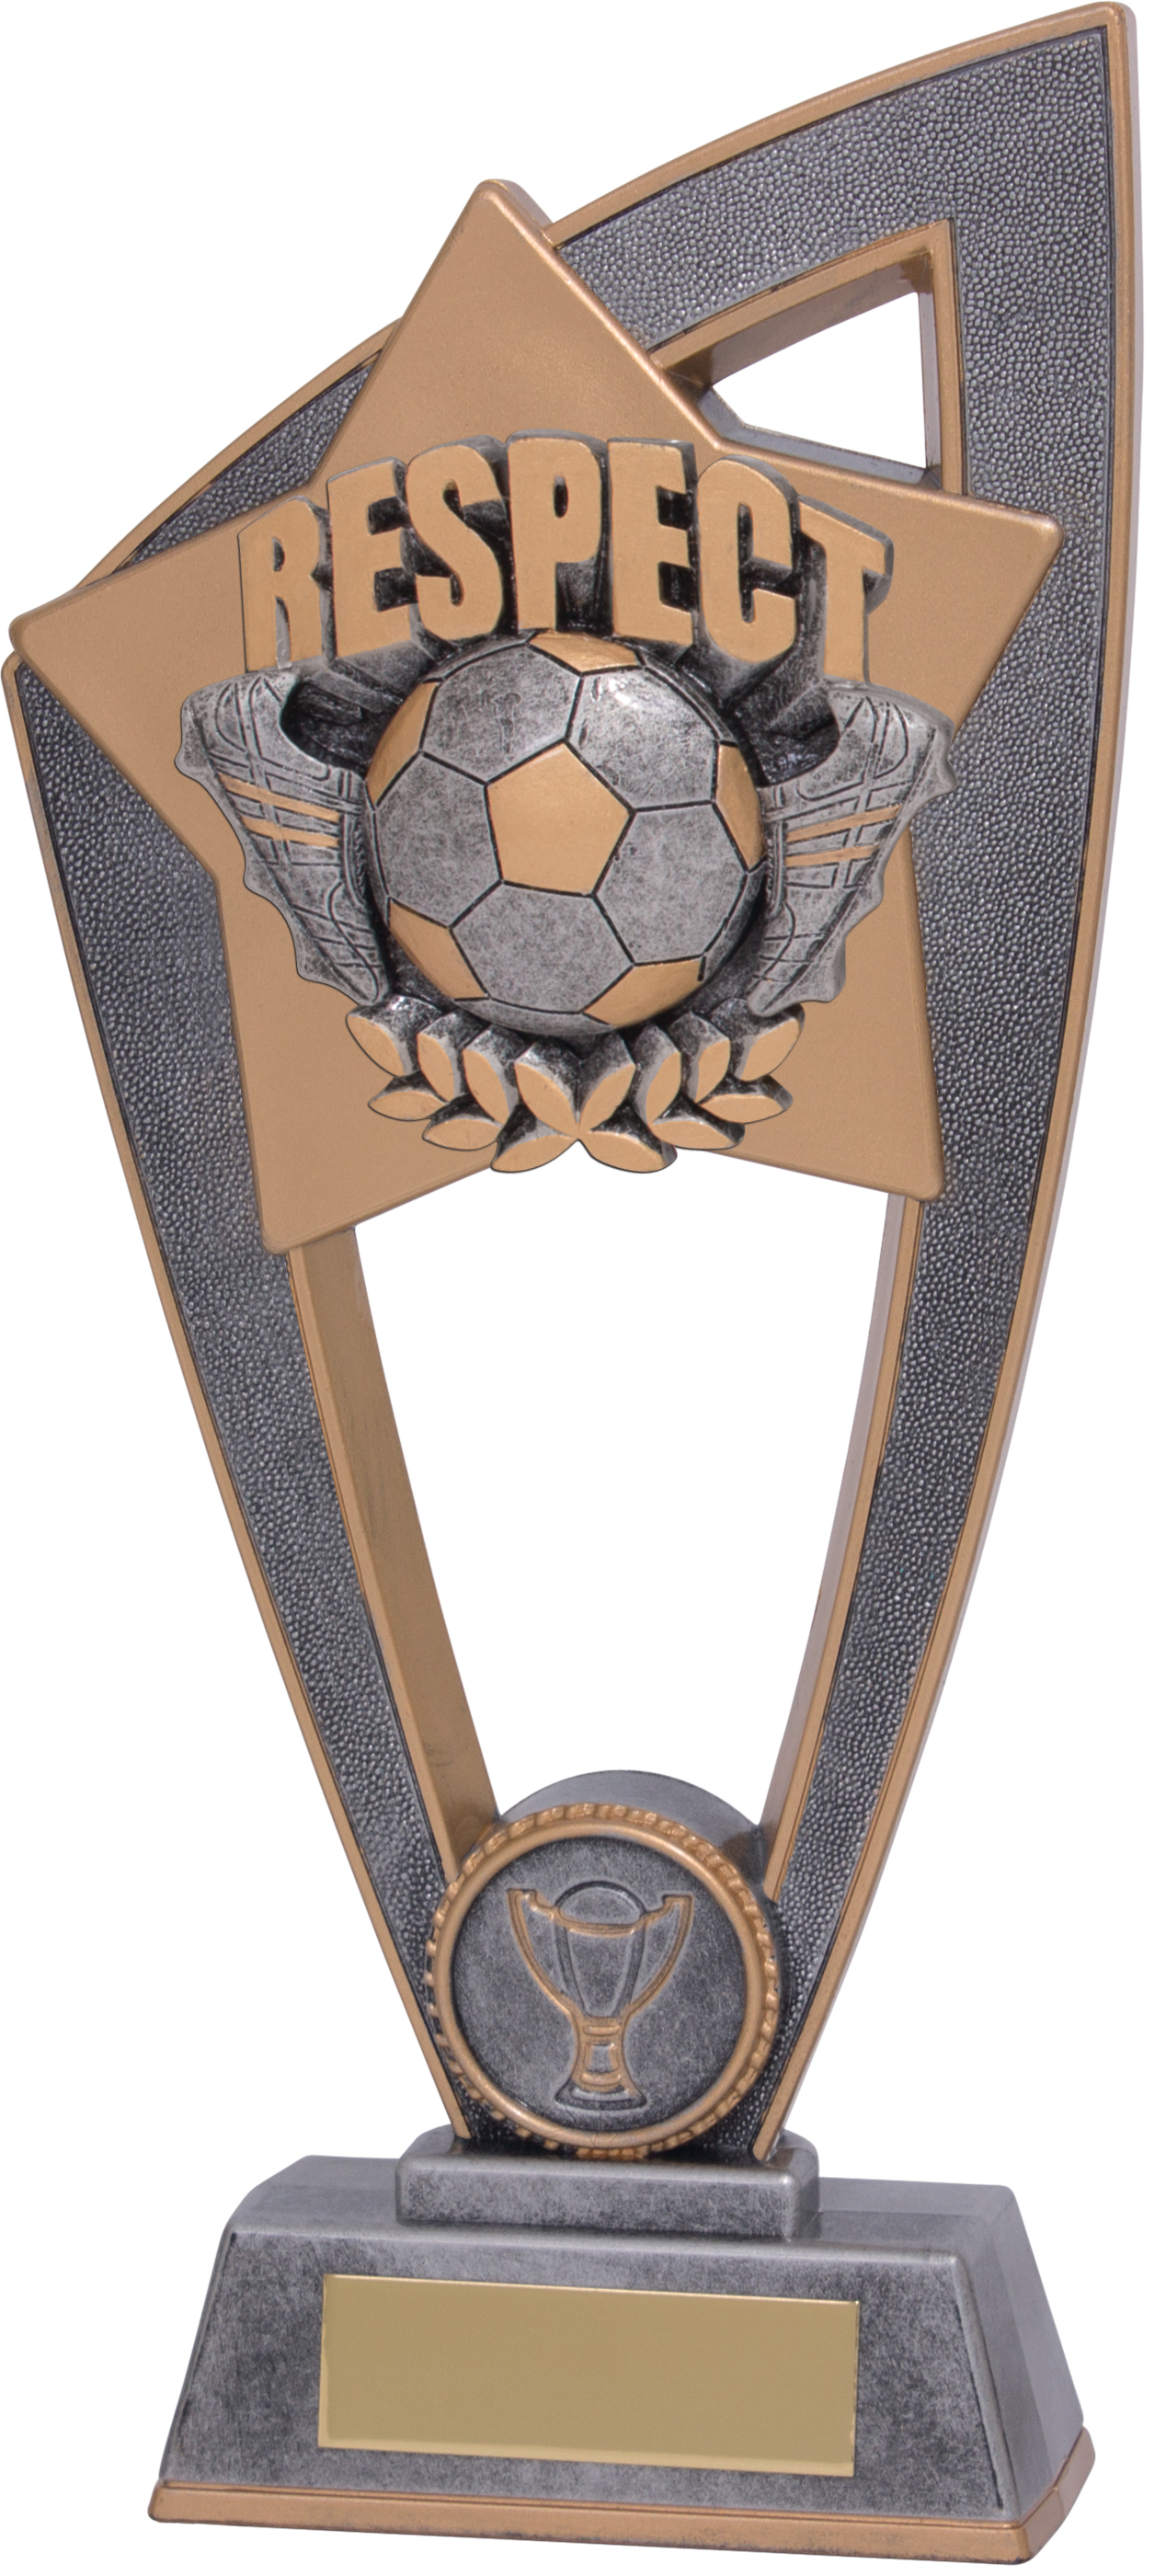 "Football Respect Star Blast Trophy 18cm (7"")"